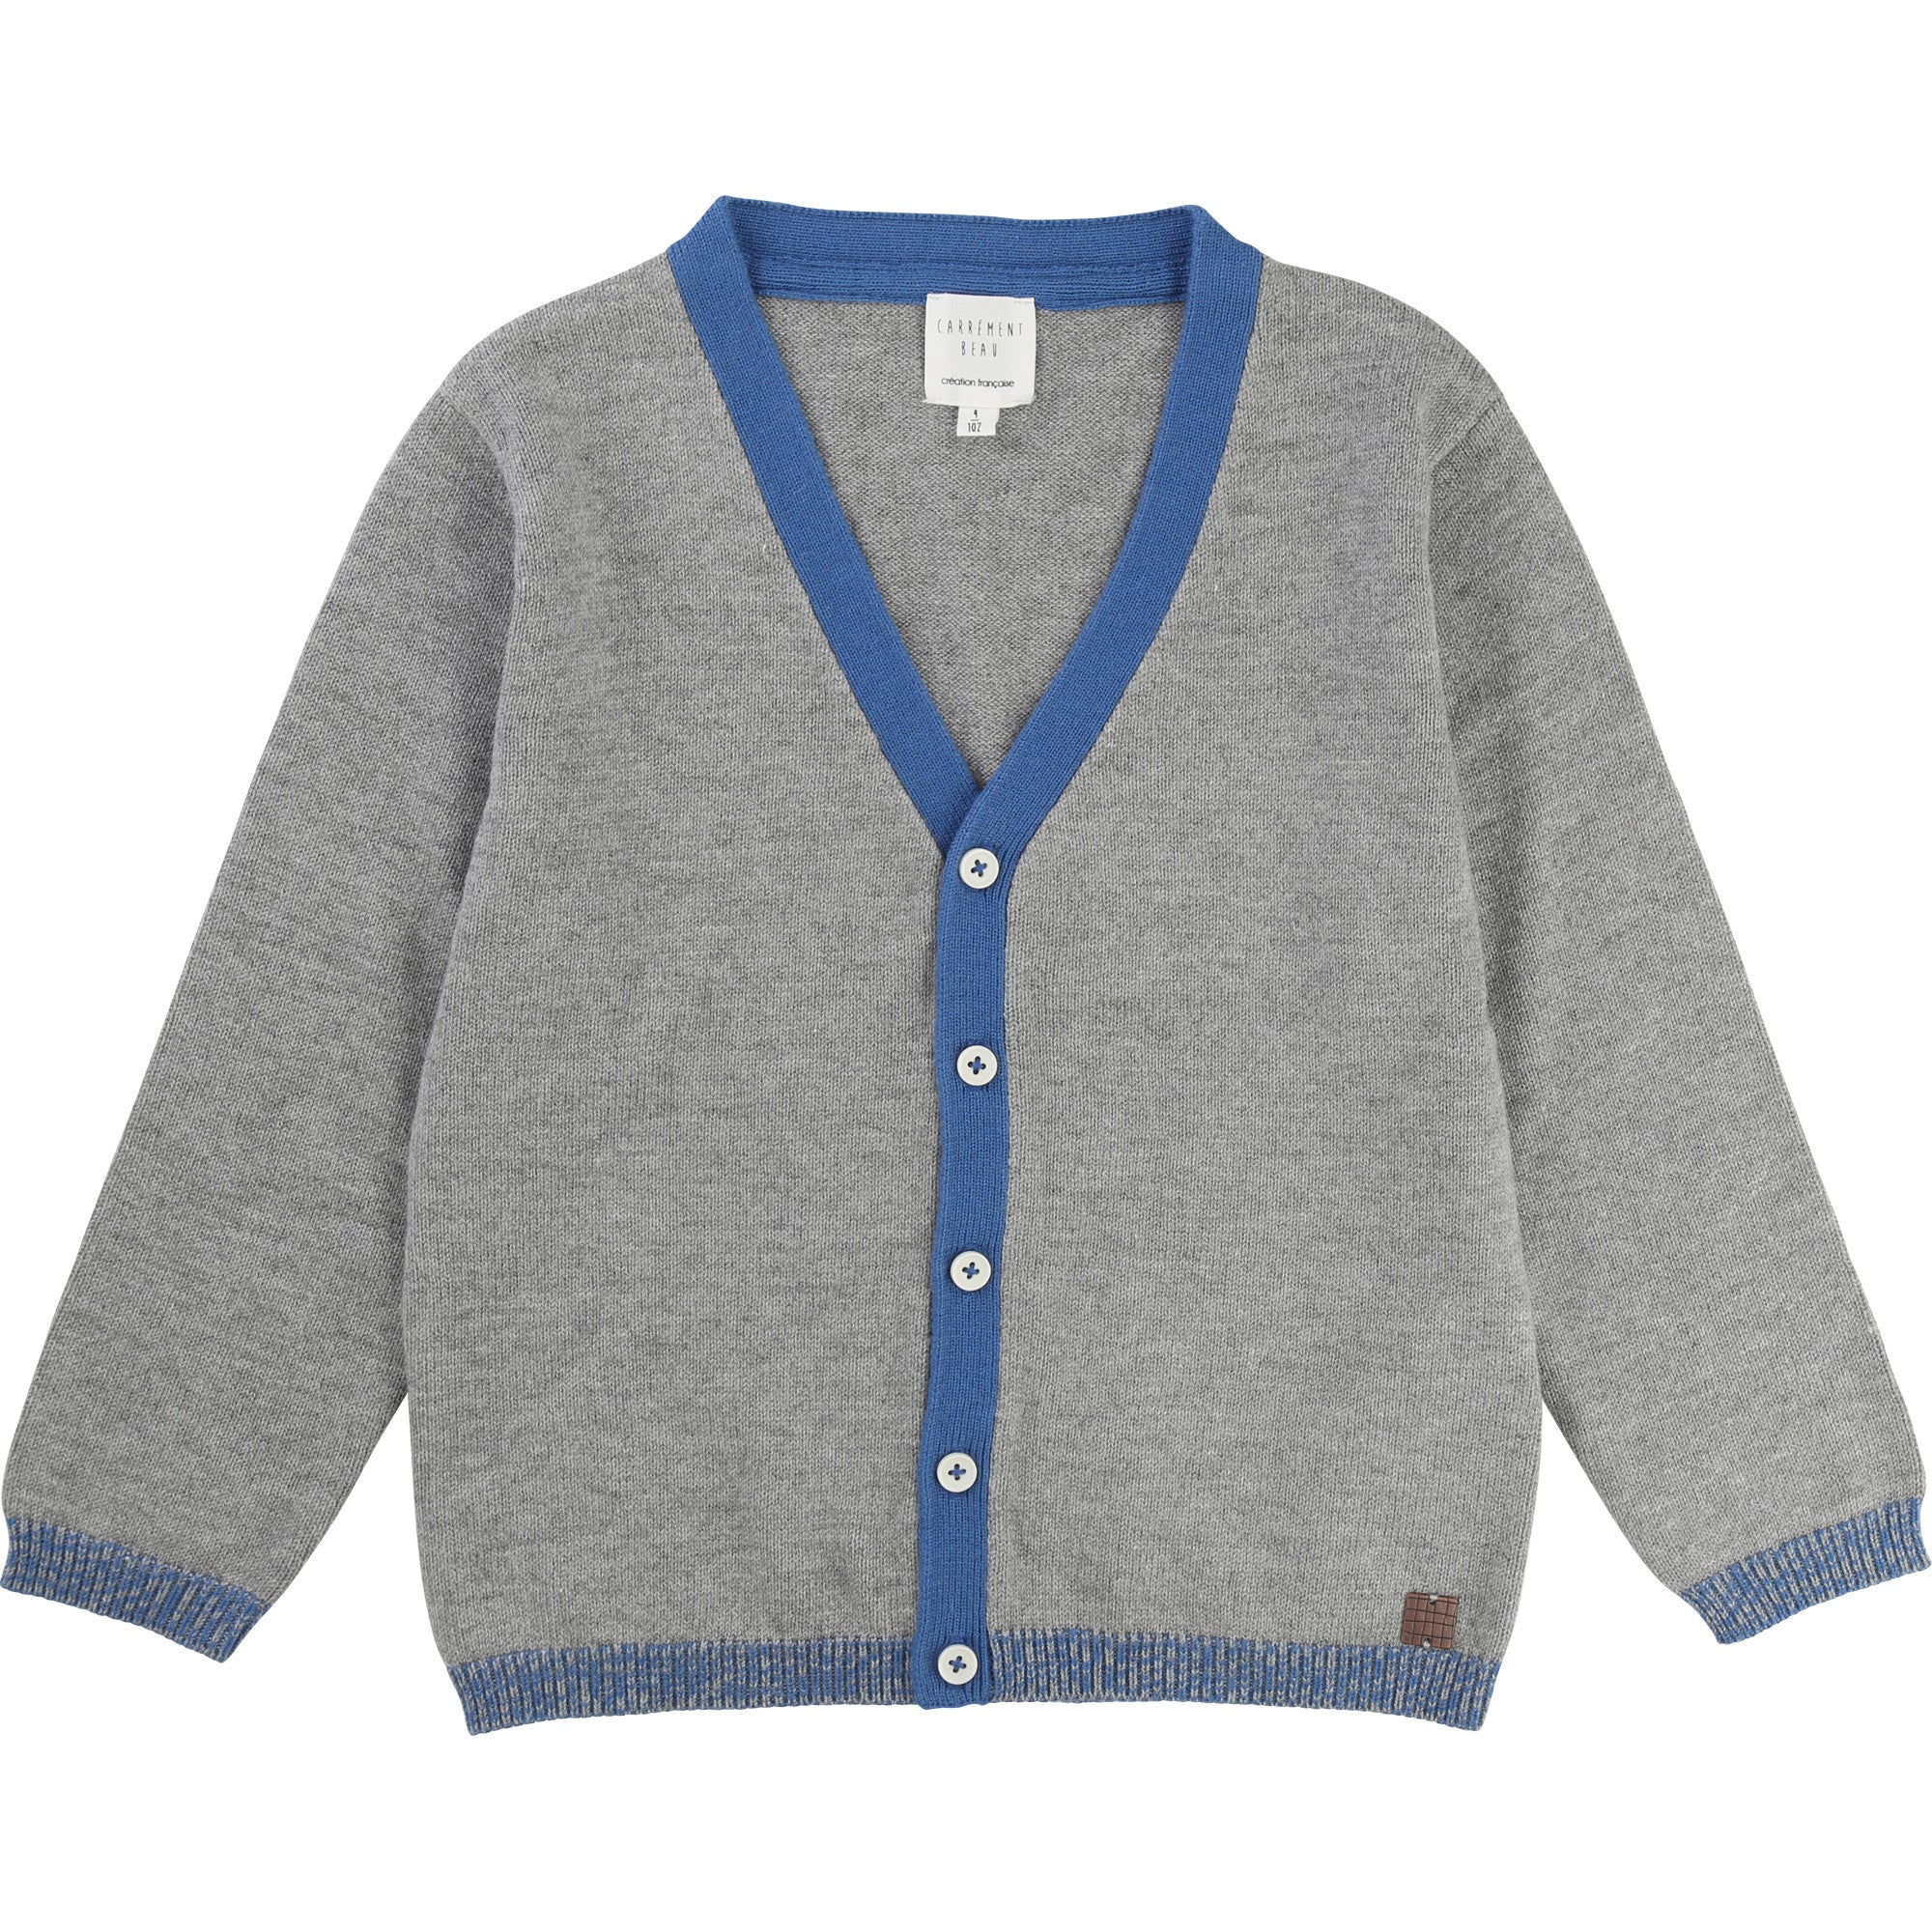 BOYS GREY CARDIGAN